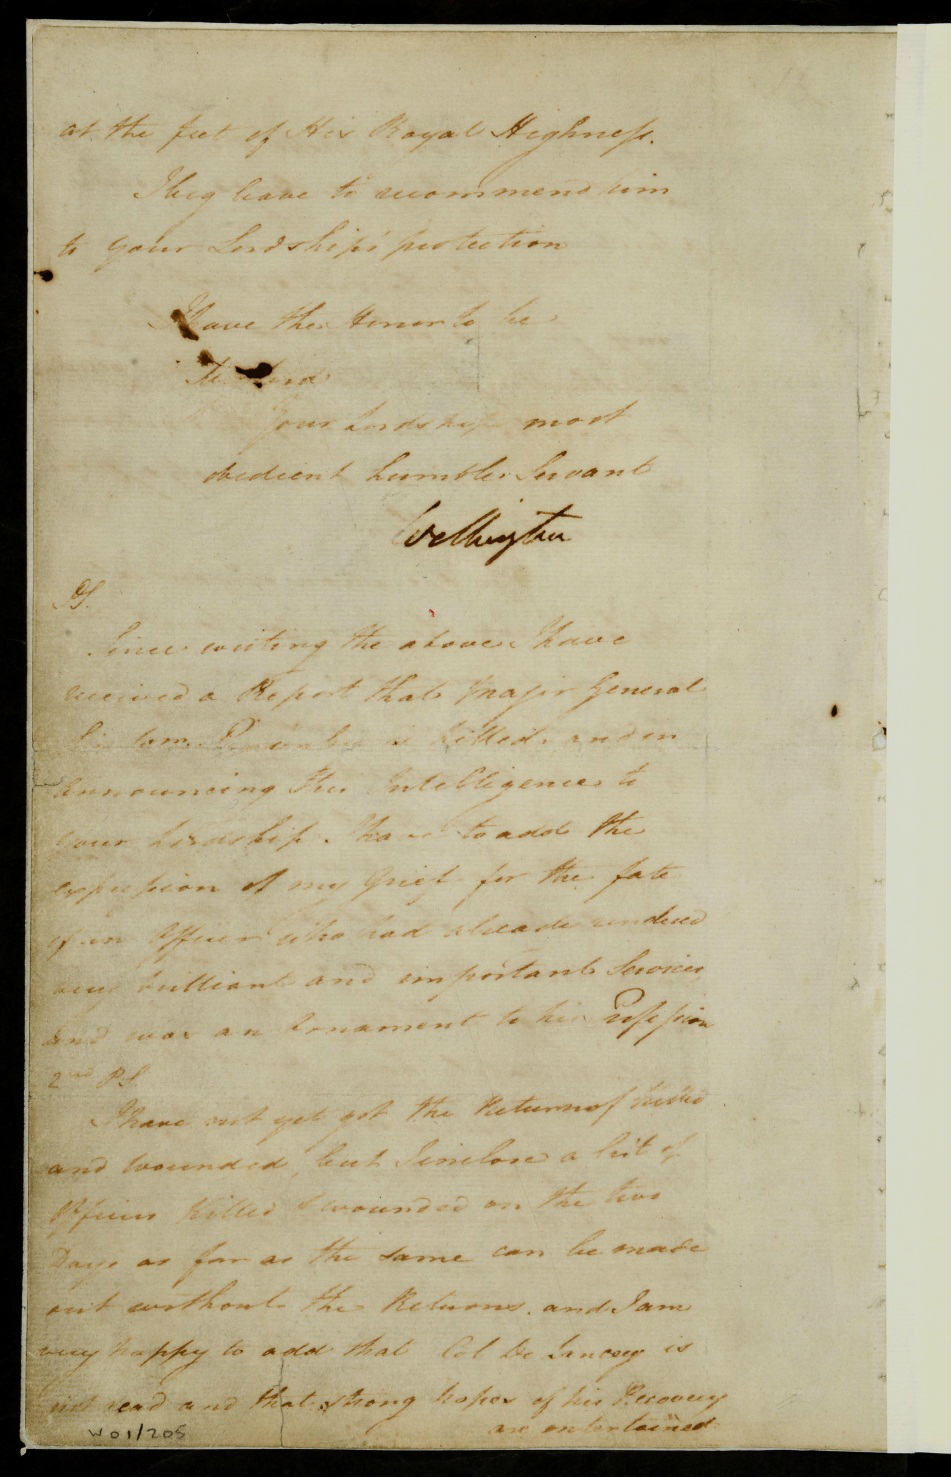 Final page of the Duke of Wellington's account of the Battle of Waterloo, dated 19 June 1815, to Earl Bathurst, the Secretary of State for War (catalogue reference: WO 1/205/2)